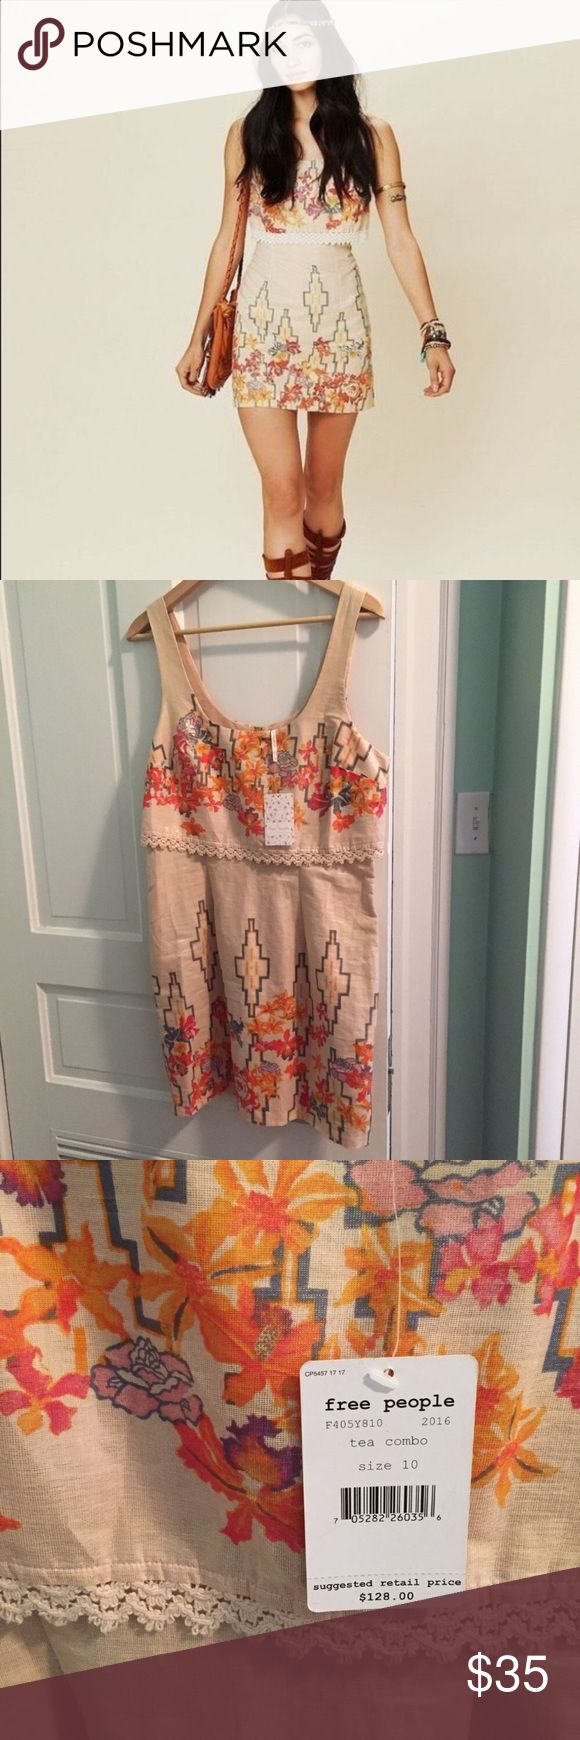 NWT Free People floral crochet mini dress NWT -Gorgeous free people dress. Super flattering. Refer to pic. Slight shimmer to the fabric. Size 10 Free People Dresses Mini